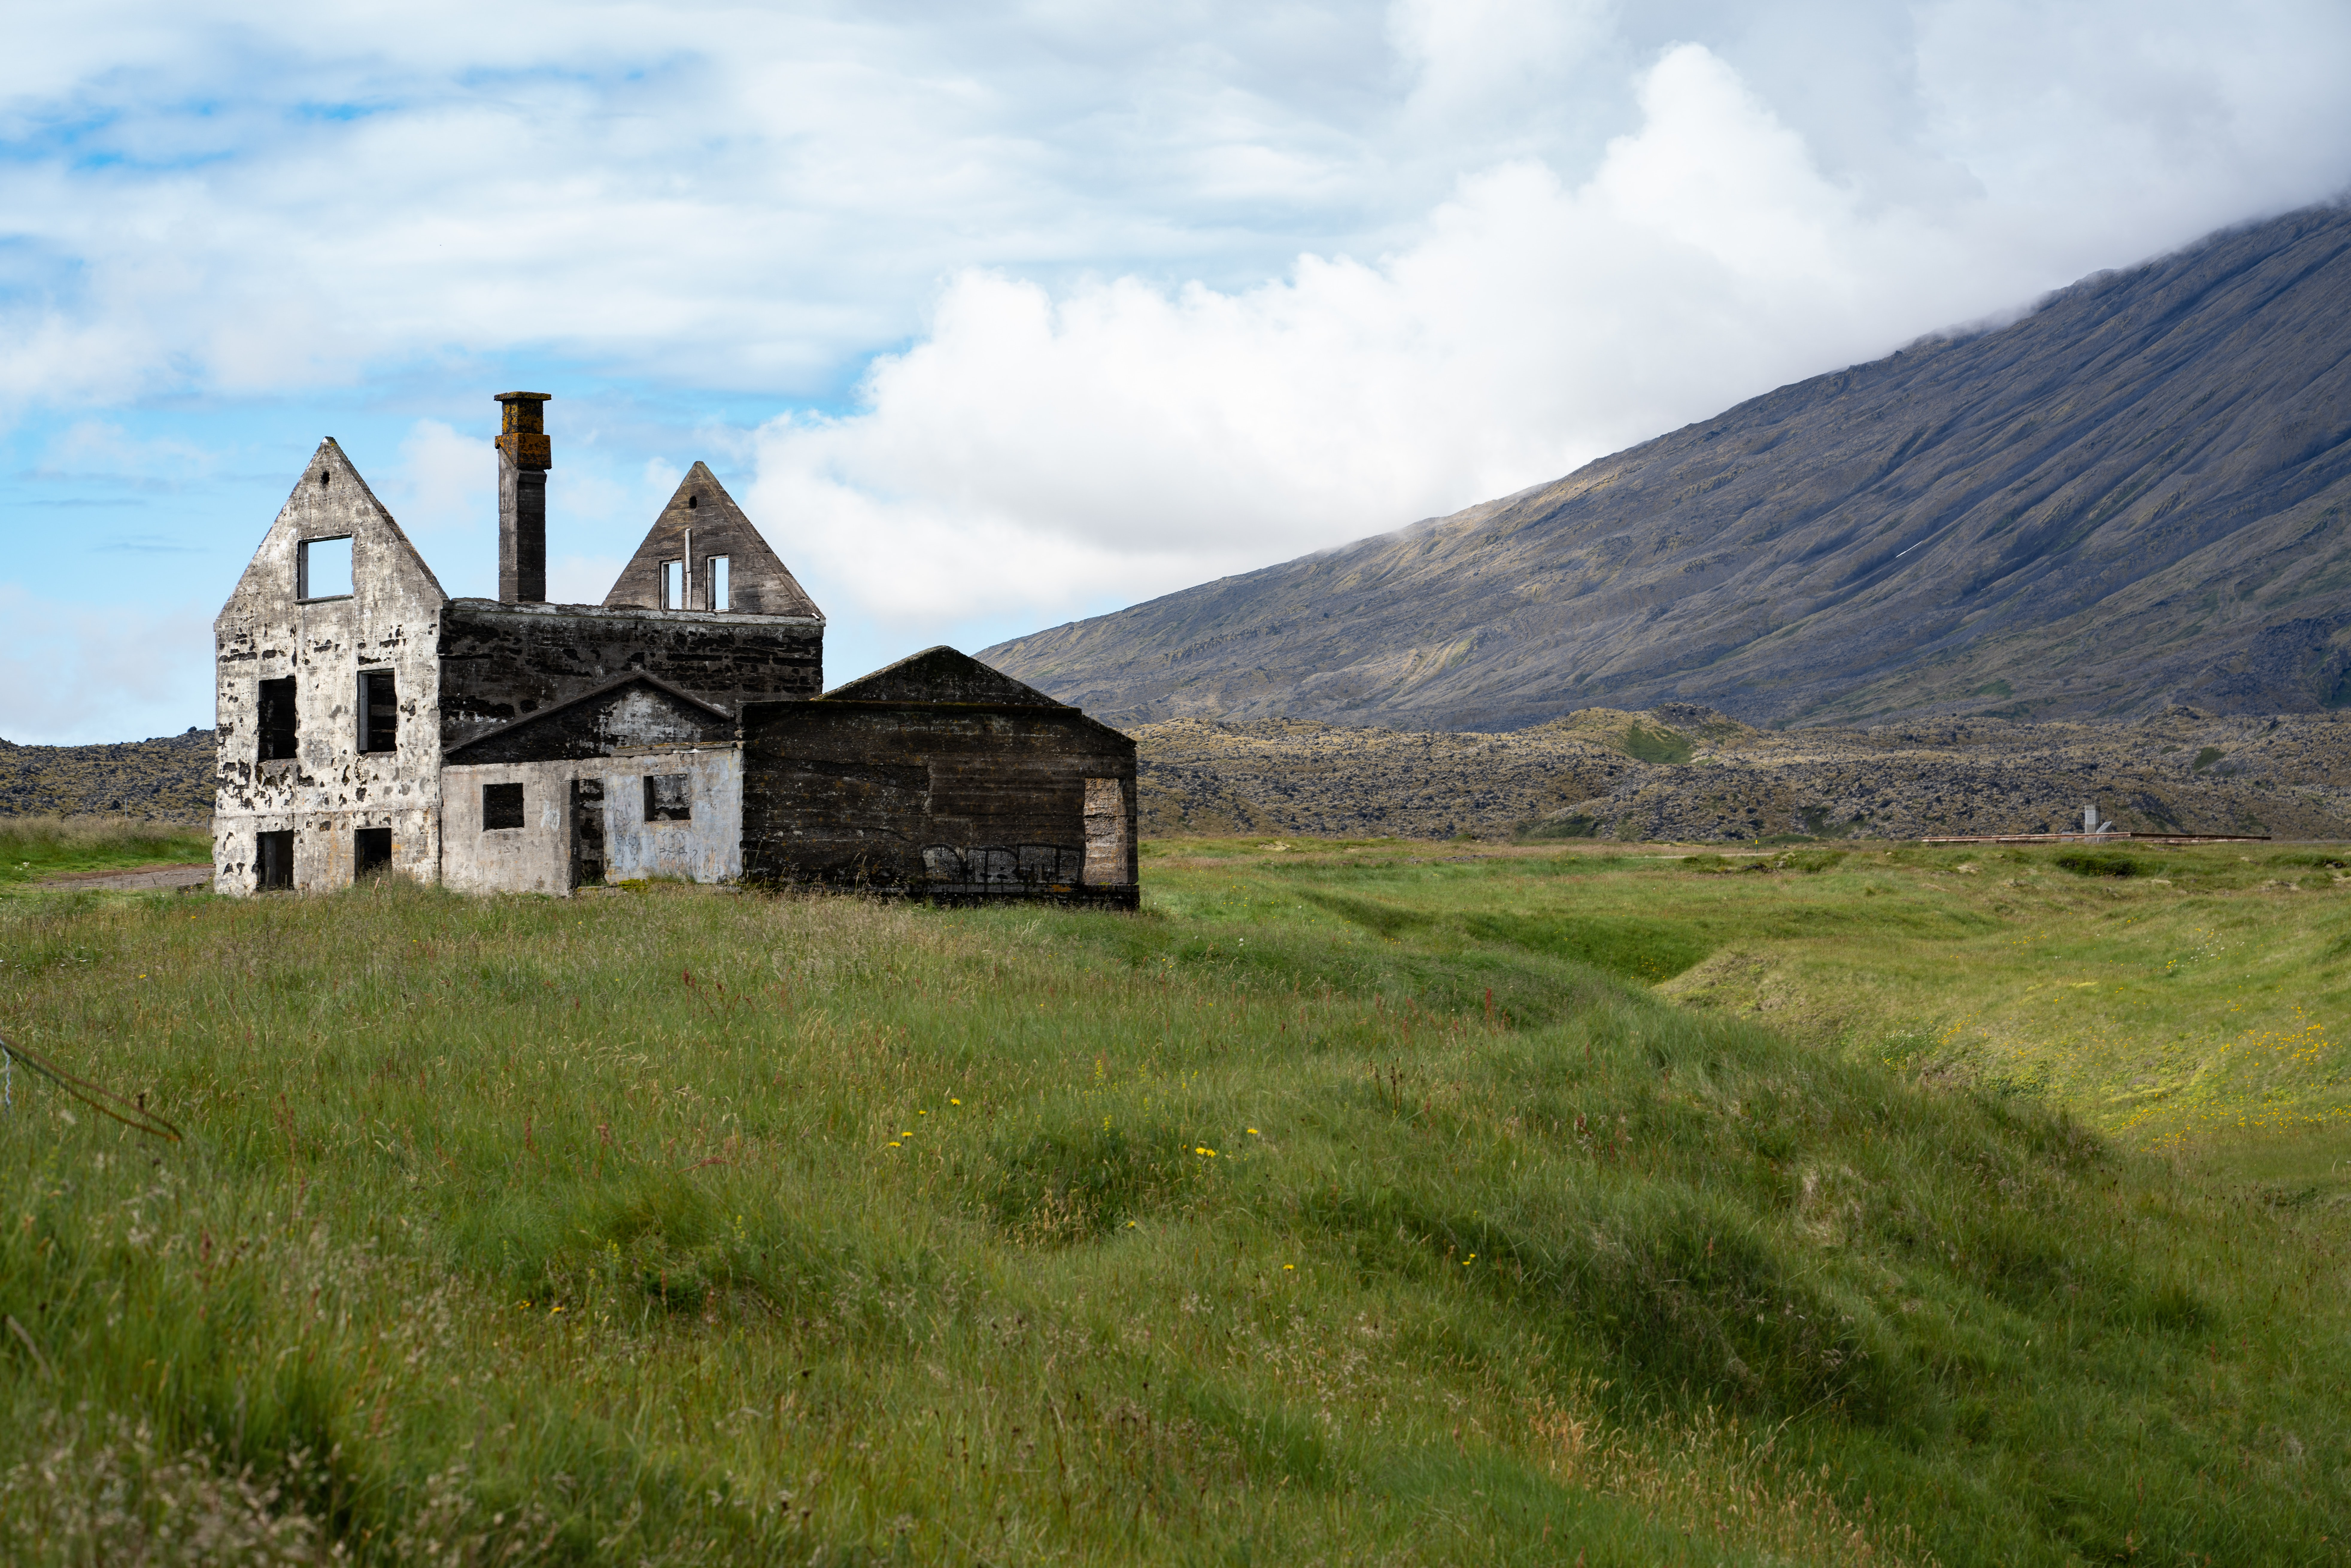 gray building near grass field and mountain under white cloud blue skies